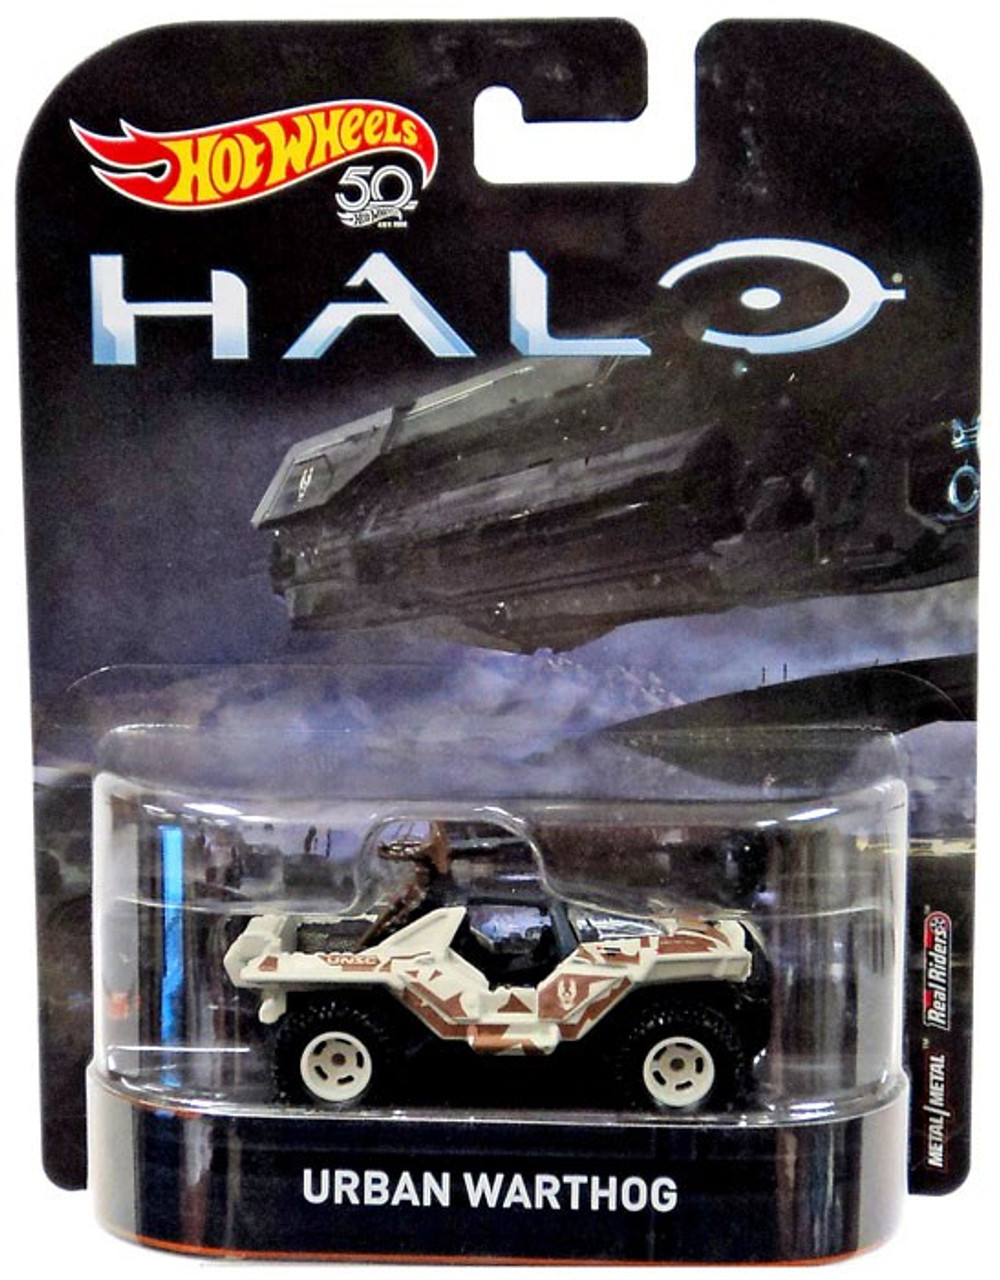 Hot Wheels Halo Urban Warthog Die-Cast Car